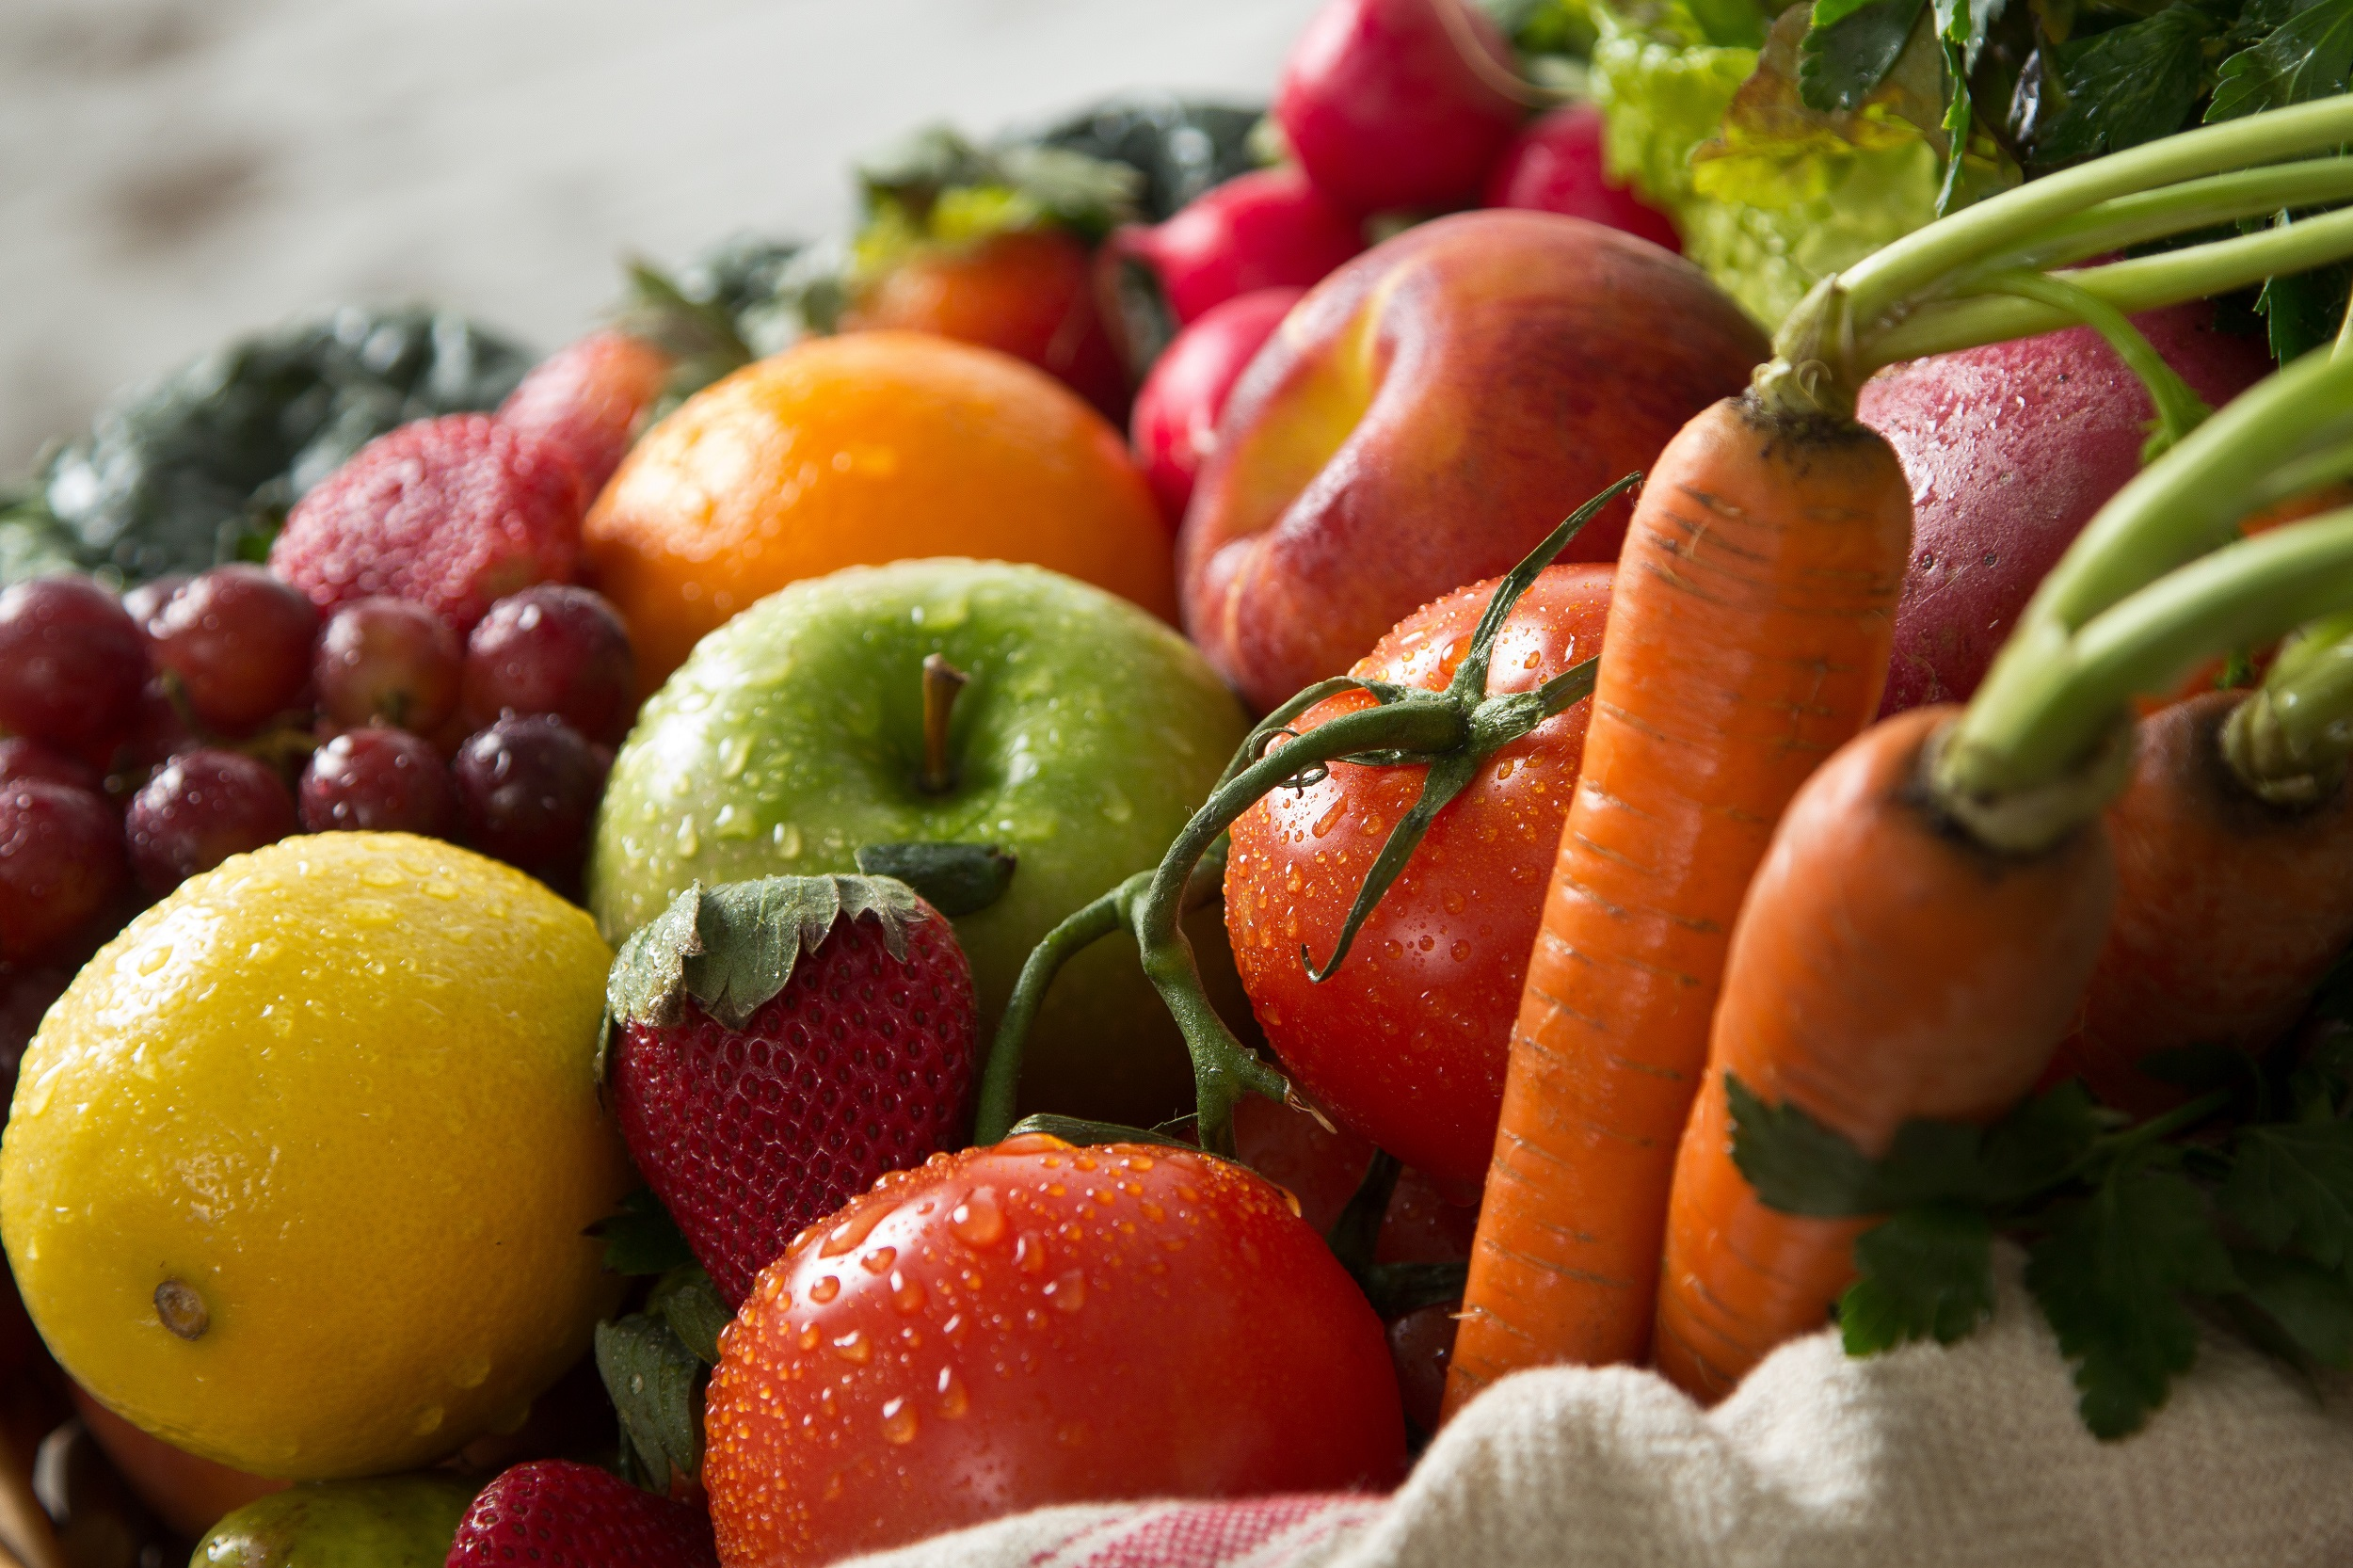 Dixie Delight Produce Bundle with Homemade Jam (Local Delivery)